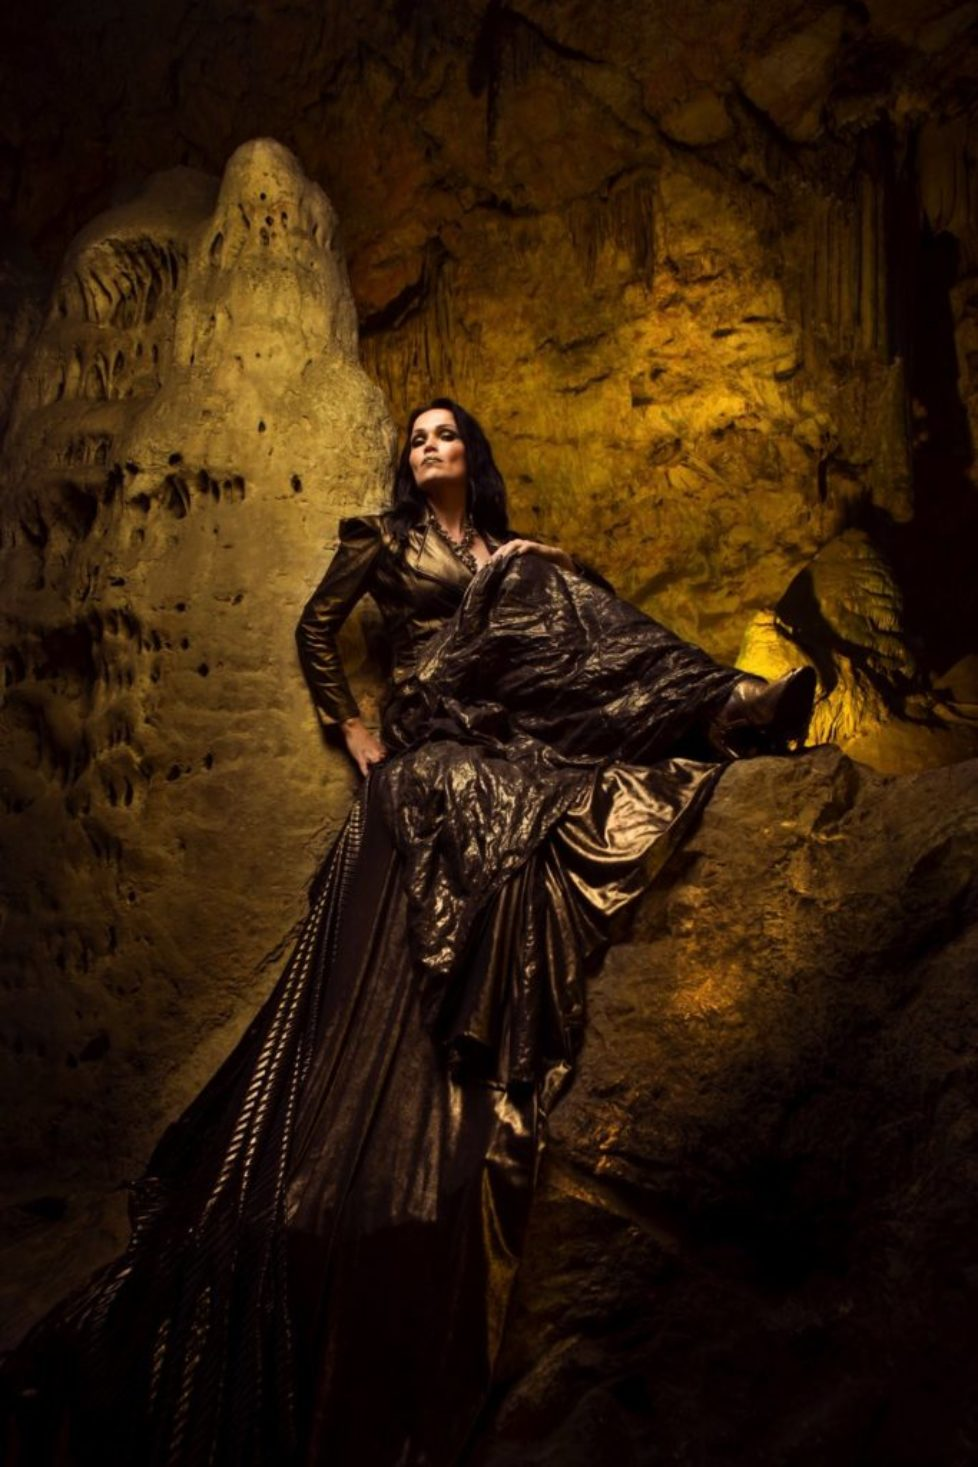 TARJA-In-The-Raw-Press-Pictures-082019-7-Copyright-earMUSIC-Photo-Credit-Tim-Tronckoe-1000px